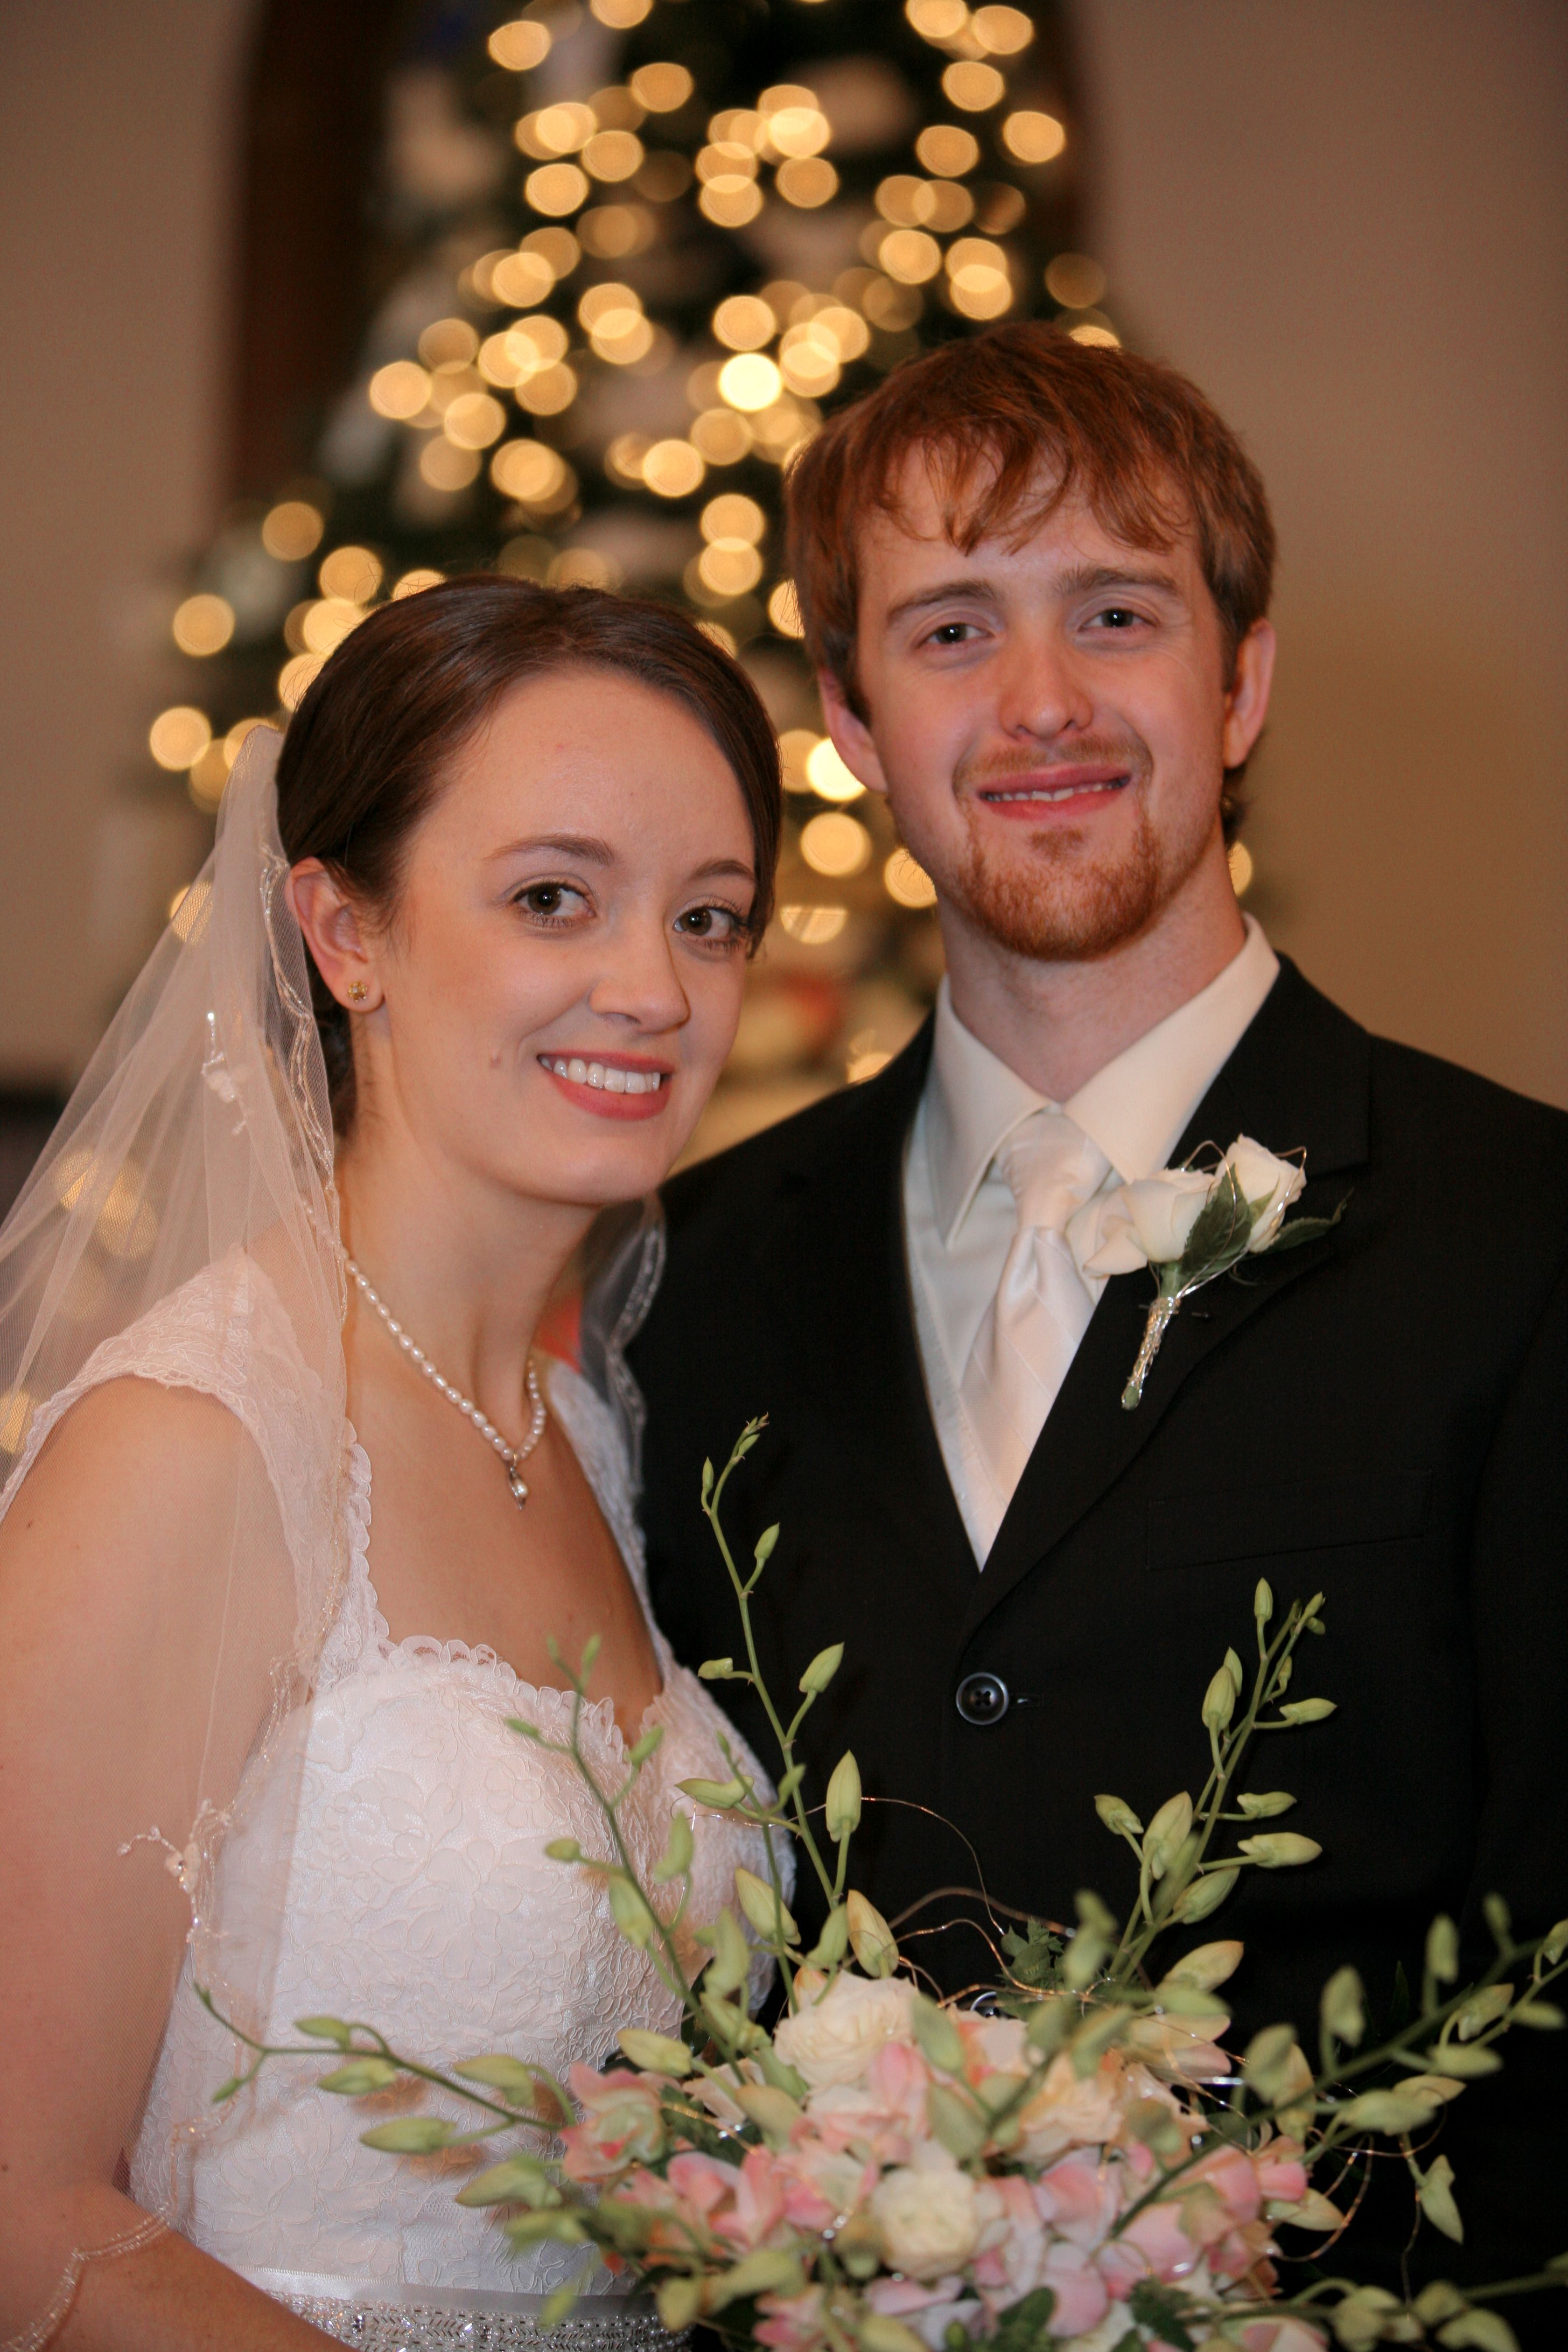 Our daughter AnneMarie (Ria) and her husband Matthew